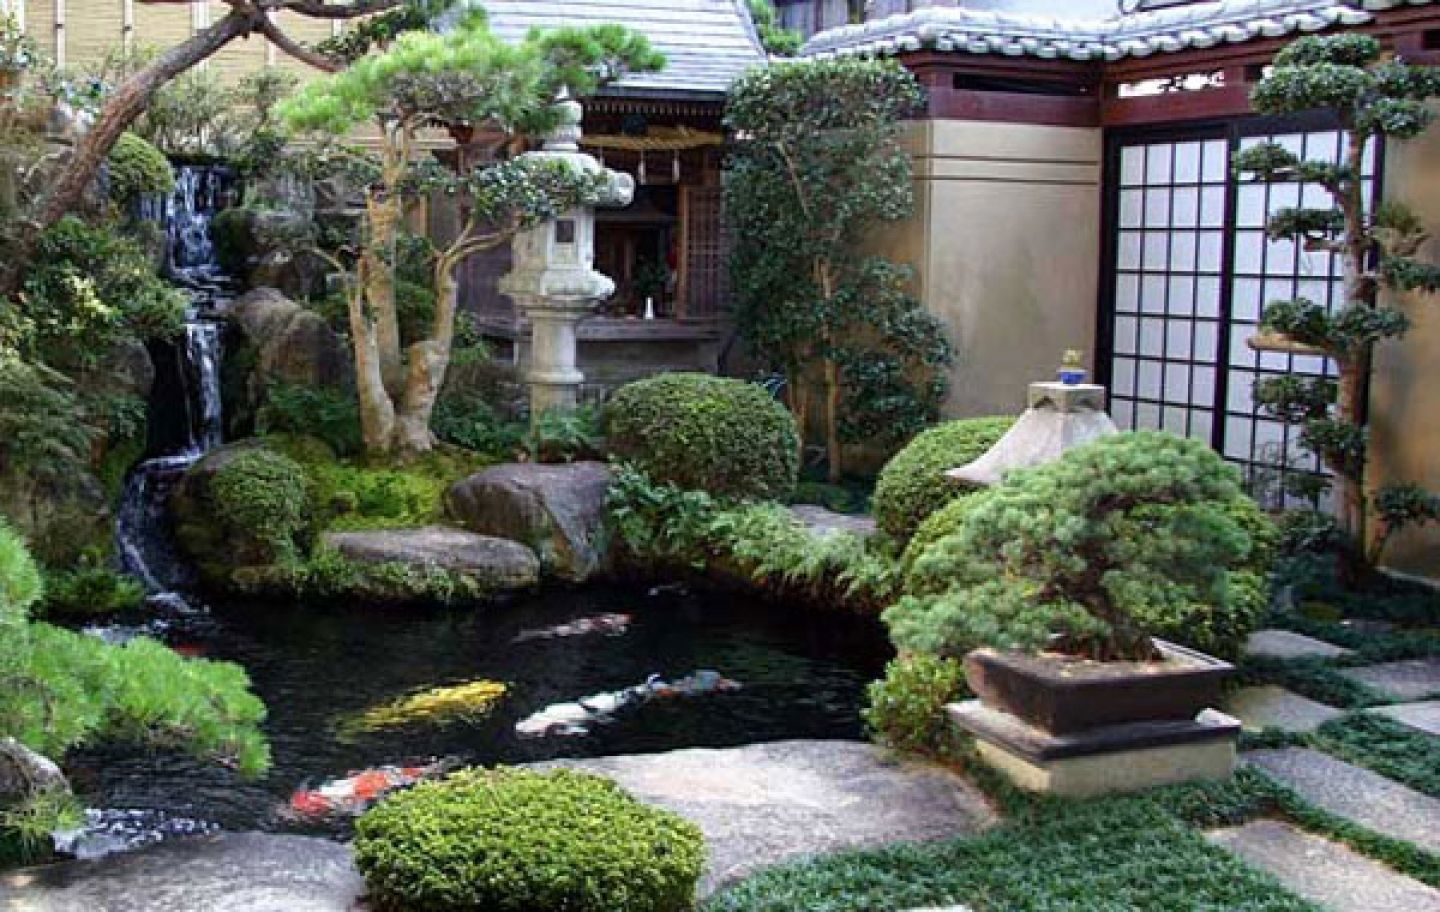 Delicieux Asian Garden Landscape Design Ideas Contemporary Gardens Designs Garden Idea